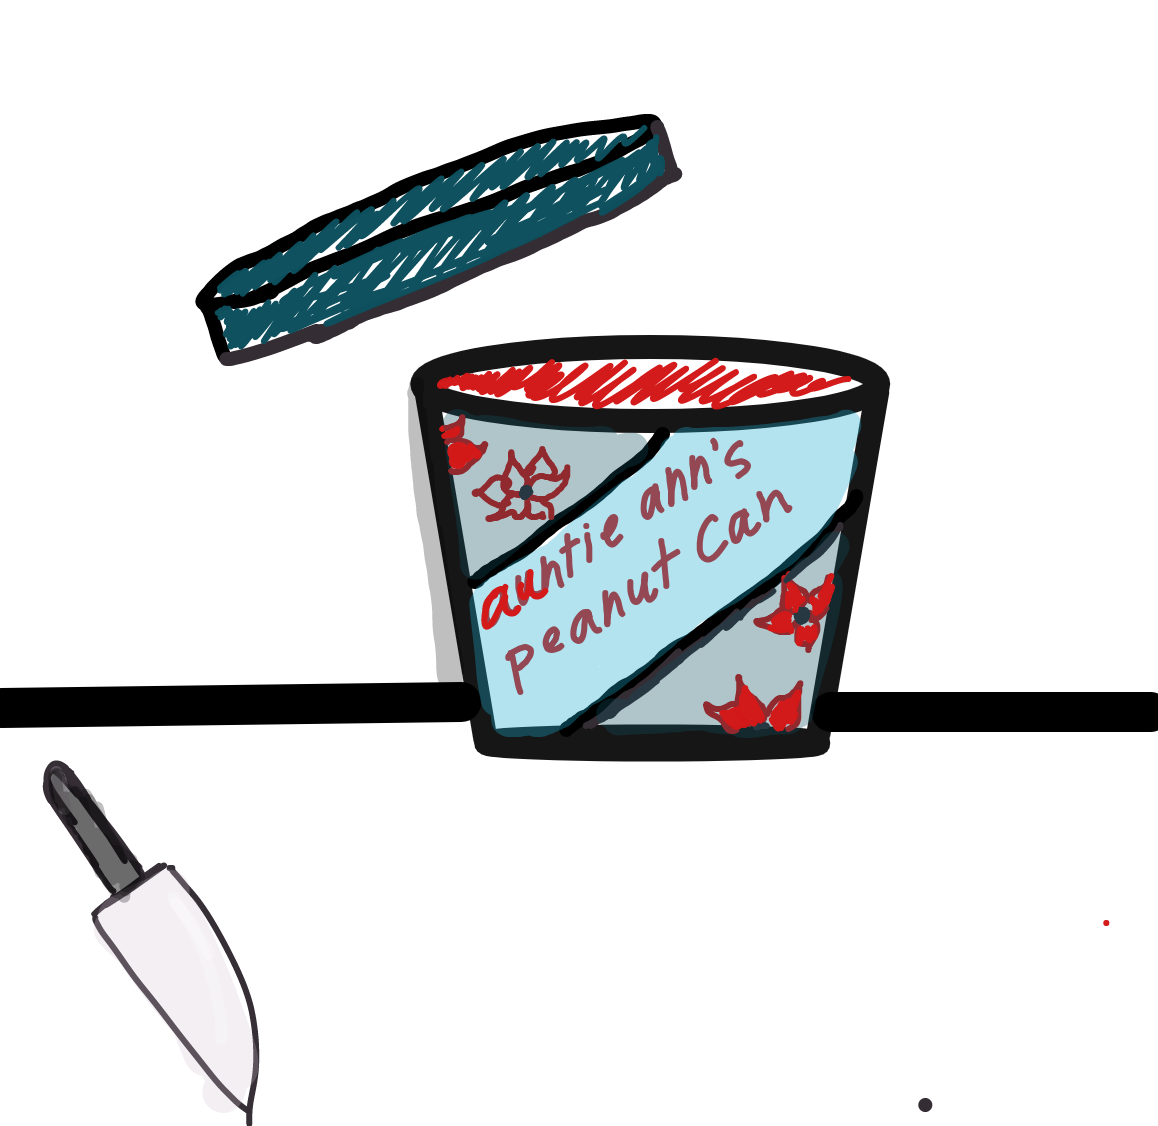 Liked webcomic What's inside the peanut can?